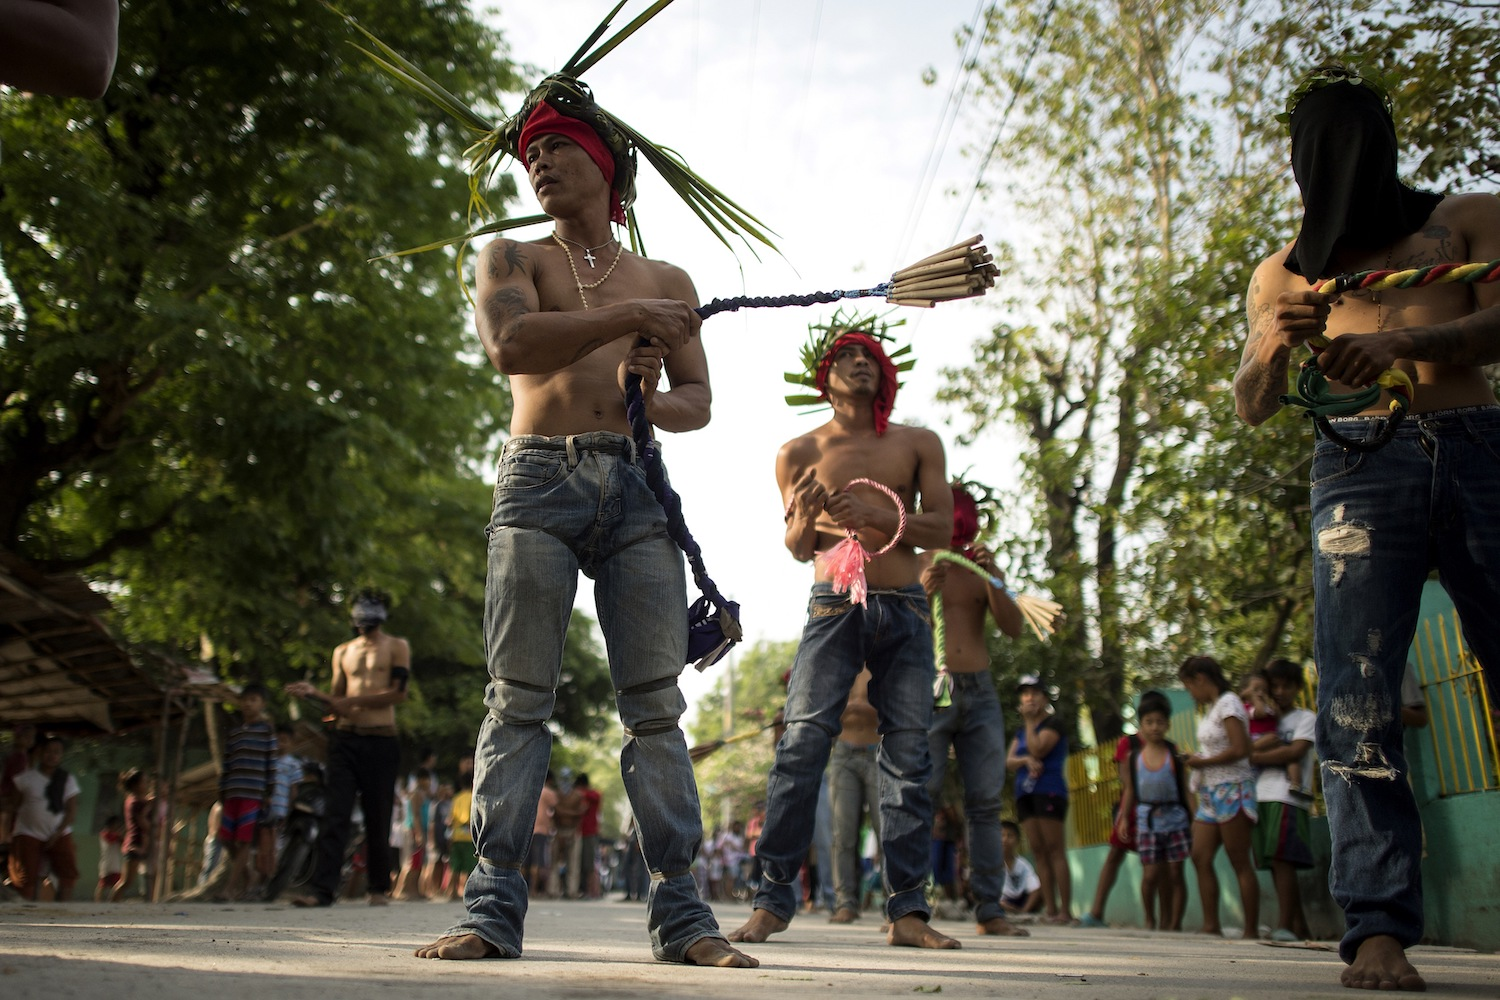 Flagellant RJ Rivera (front L) whips his back with bamboo before being wounded to bleed as part of his penitence during the re-enactment of the crucifixion of Jesus Christ for Good Friday celebrations ahead of Easter in the village of San Juan, Pampanga, north of Manila on March 30, 2018.  Rivera, a 33-year-old construction worker, has been a flagellant for 11 straight years and said he does it for the sake of his wife, who is working in Saudi Arabia, and his two daughters and son. / AFP PHOTO / Noel CELIS        (Photo credit should read NOEL CELIS/AFP/Getty Images)